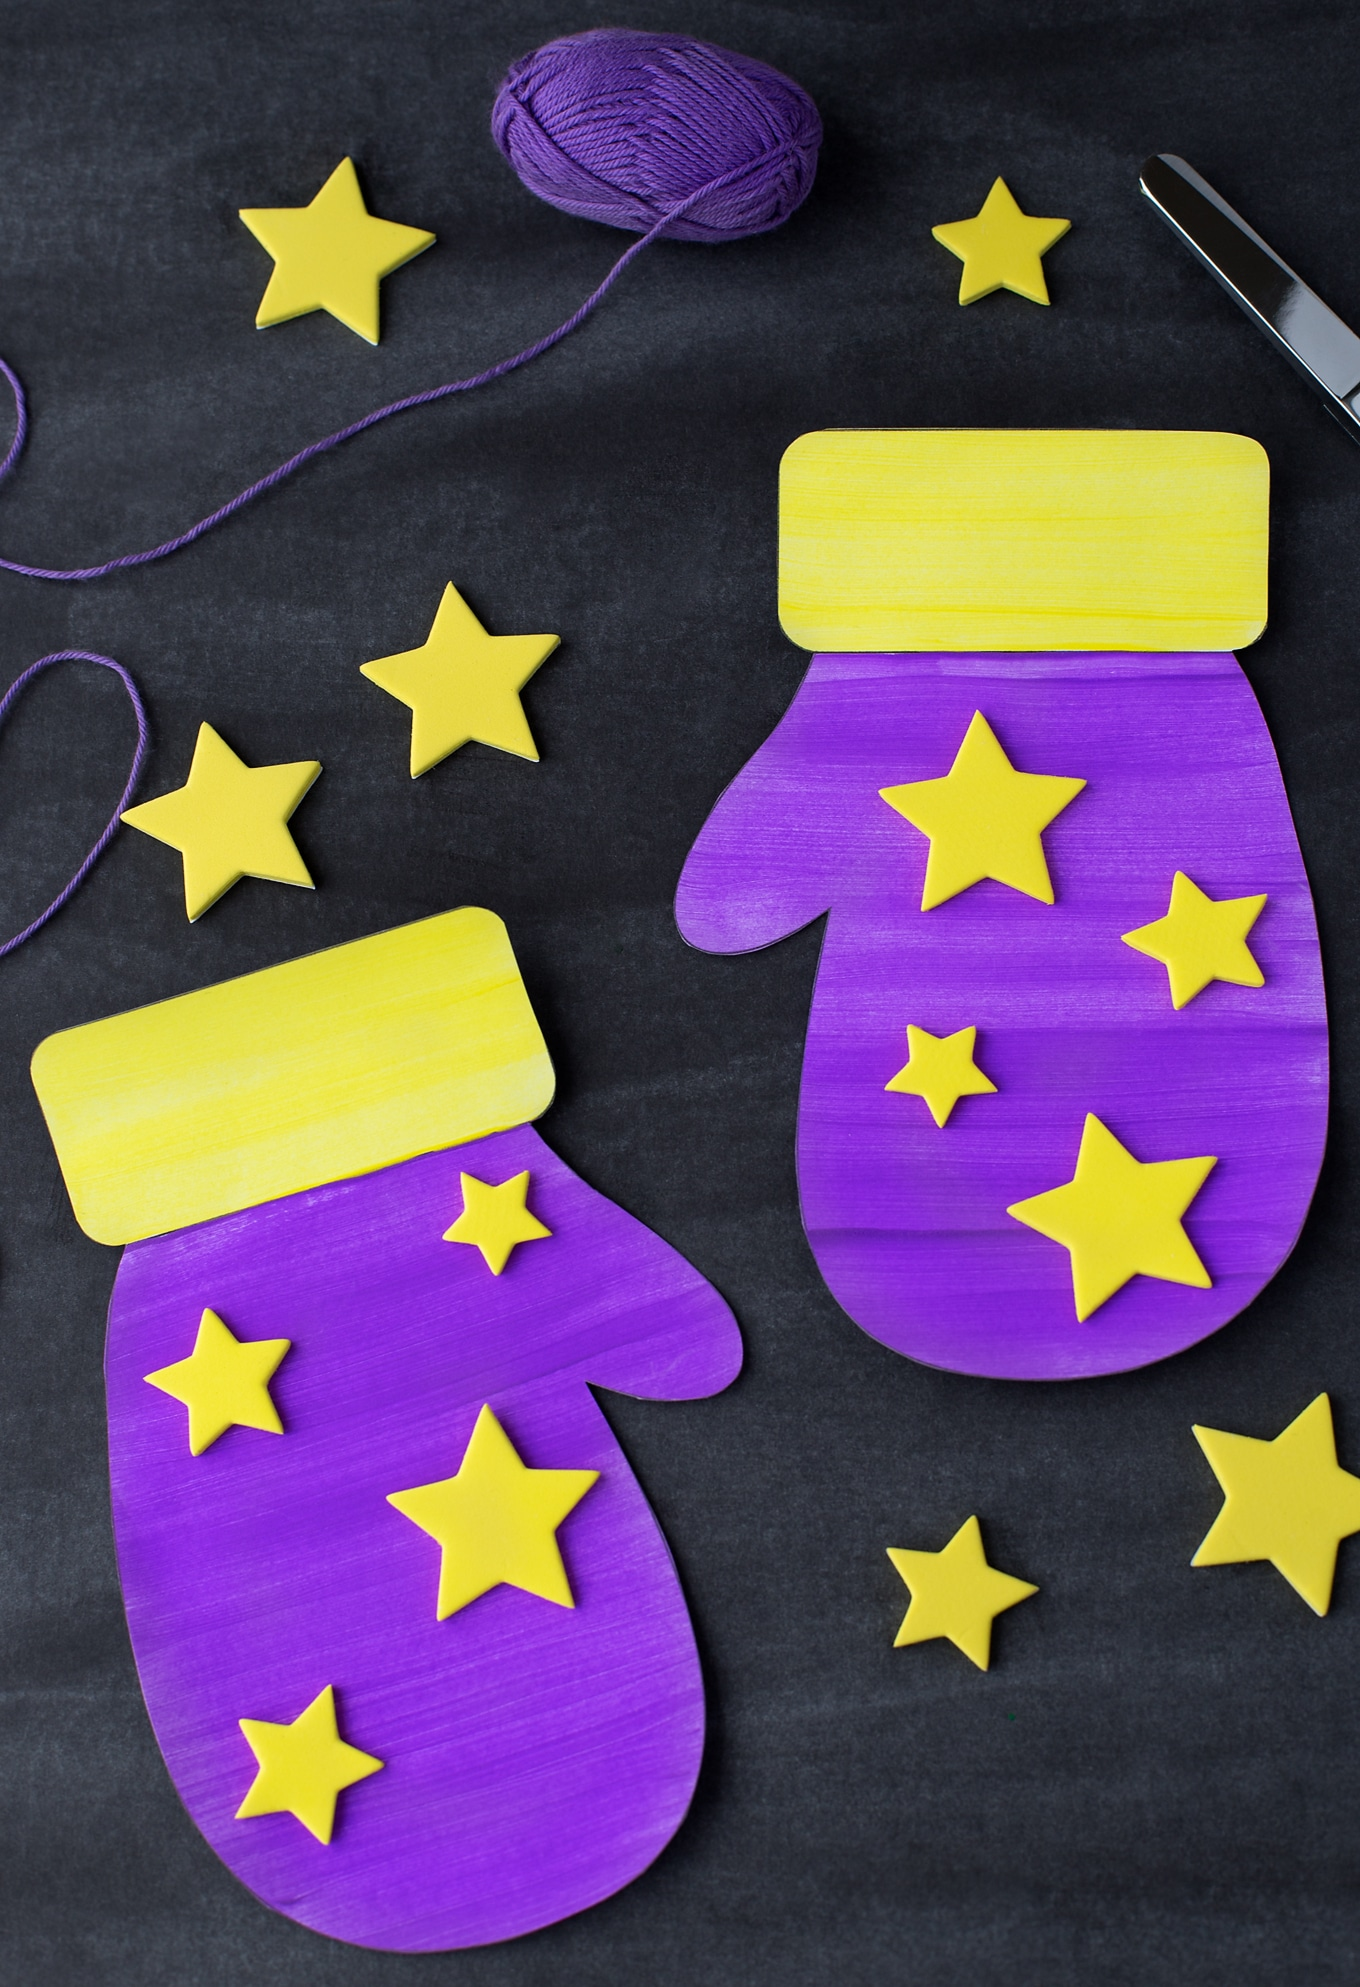 Paper Mitten Craft Painted Purple and Yellow with Stars